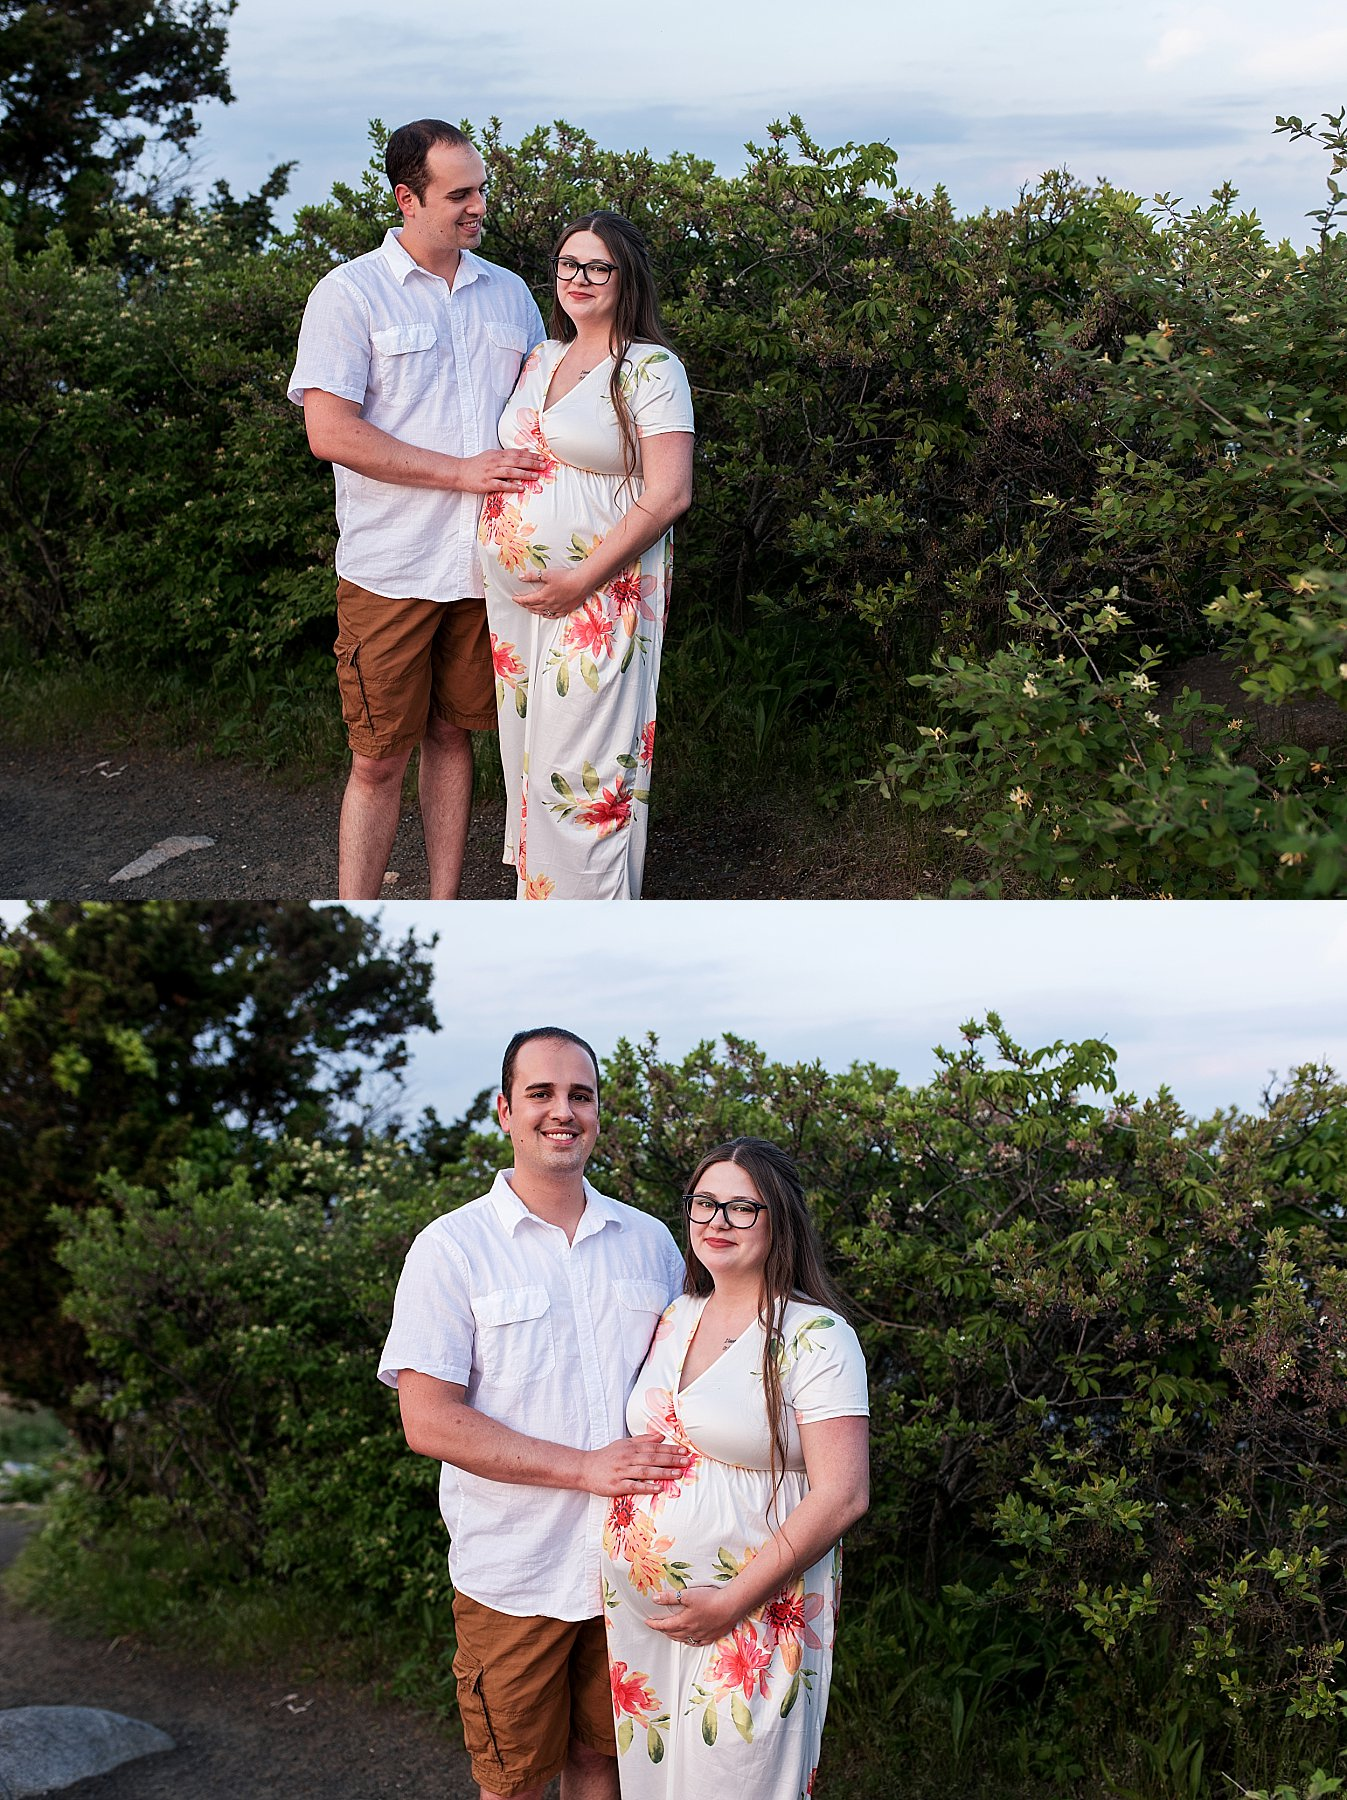 maternity photography on the beach in madision, CT